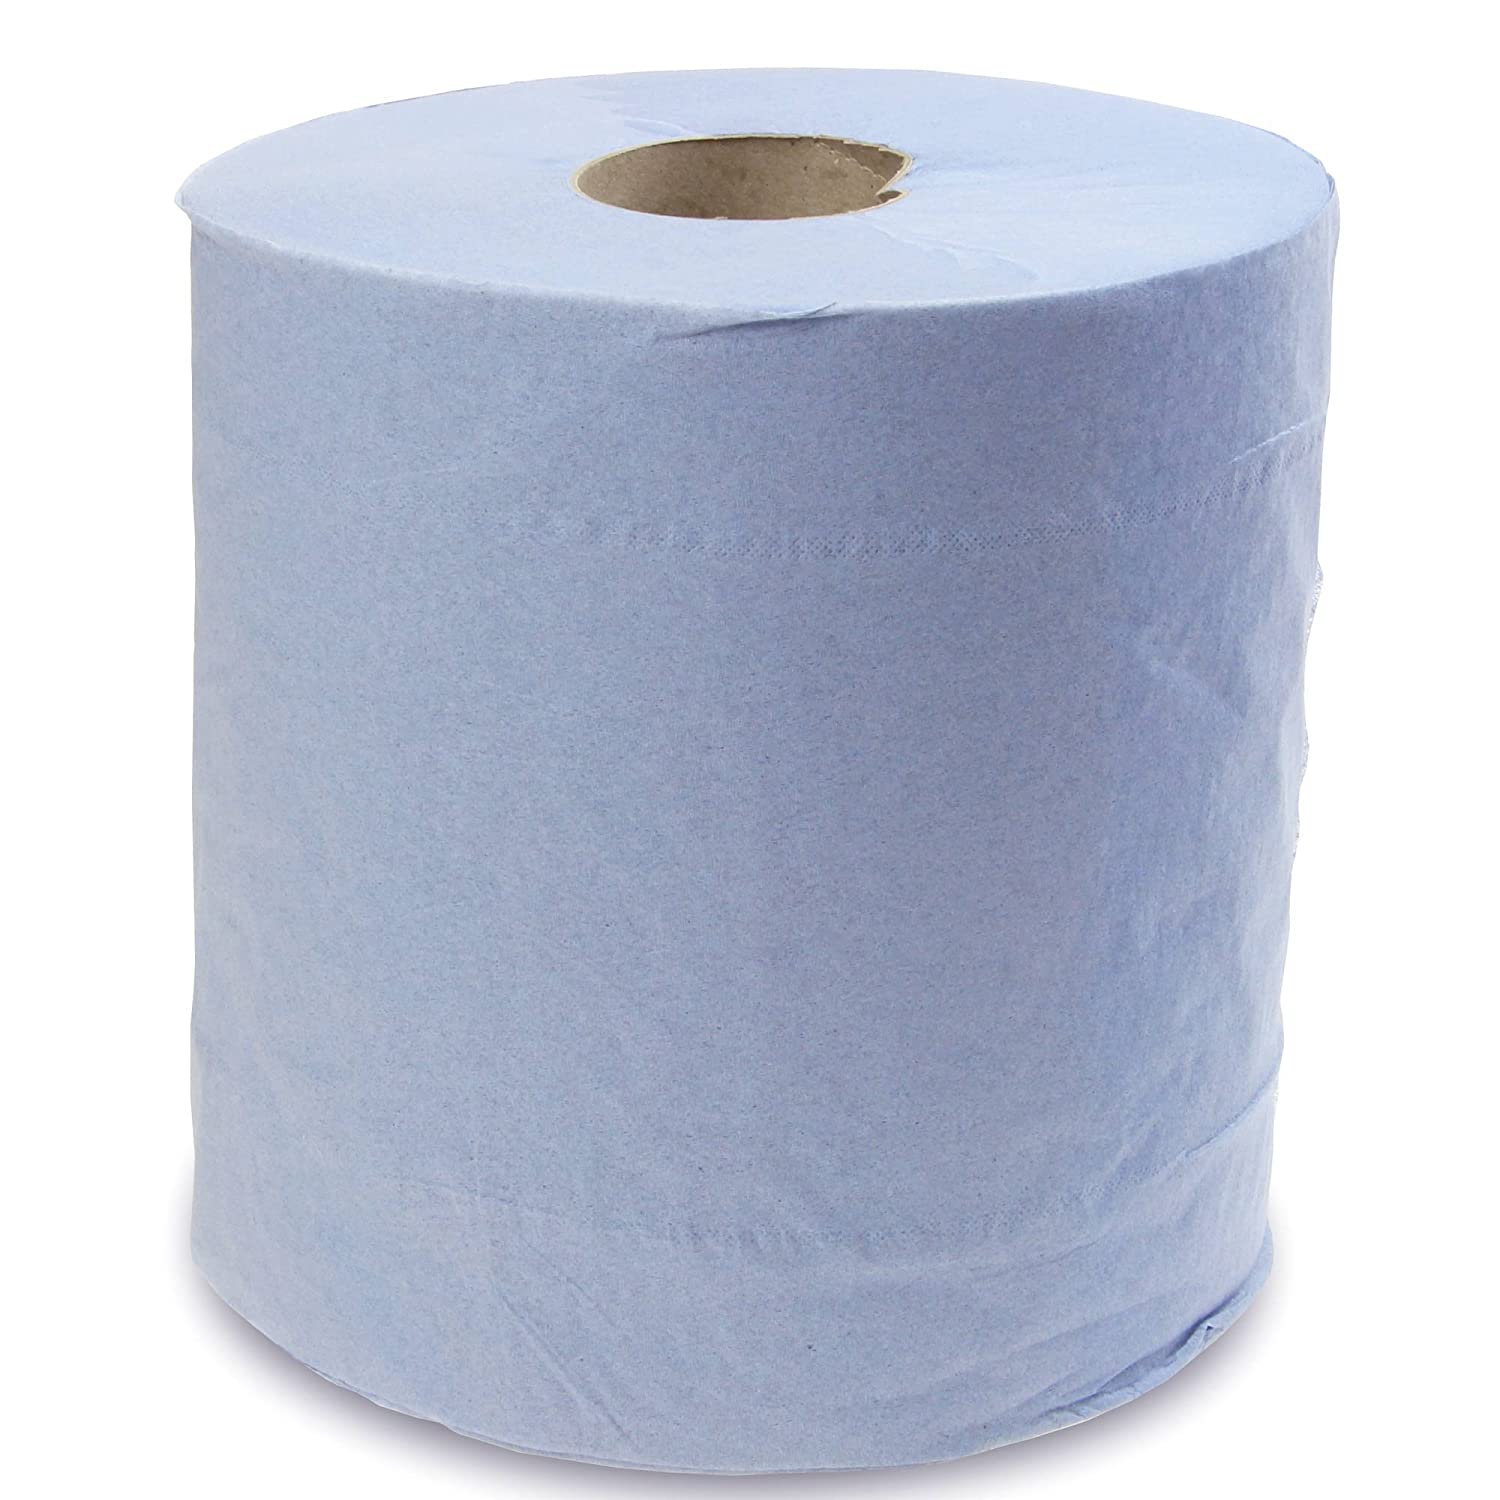 1x 2 ply blue tissue paper roll Center Feed Industrial Wipes Tissue for cleaning